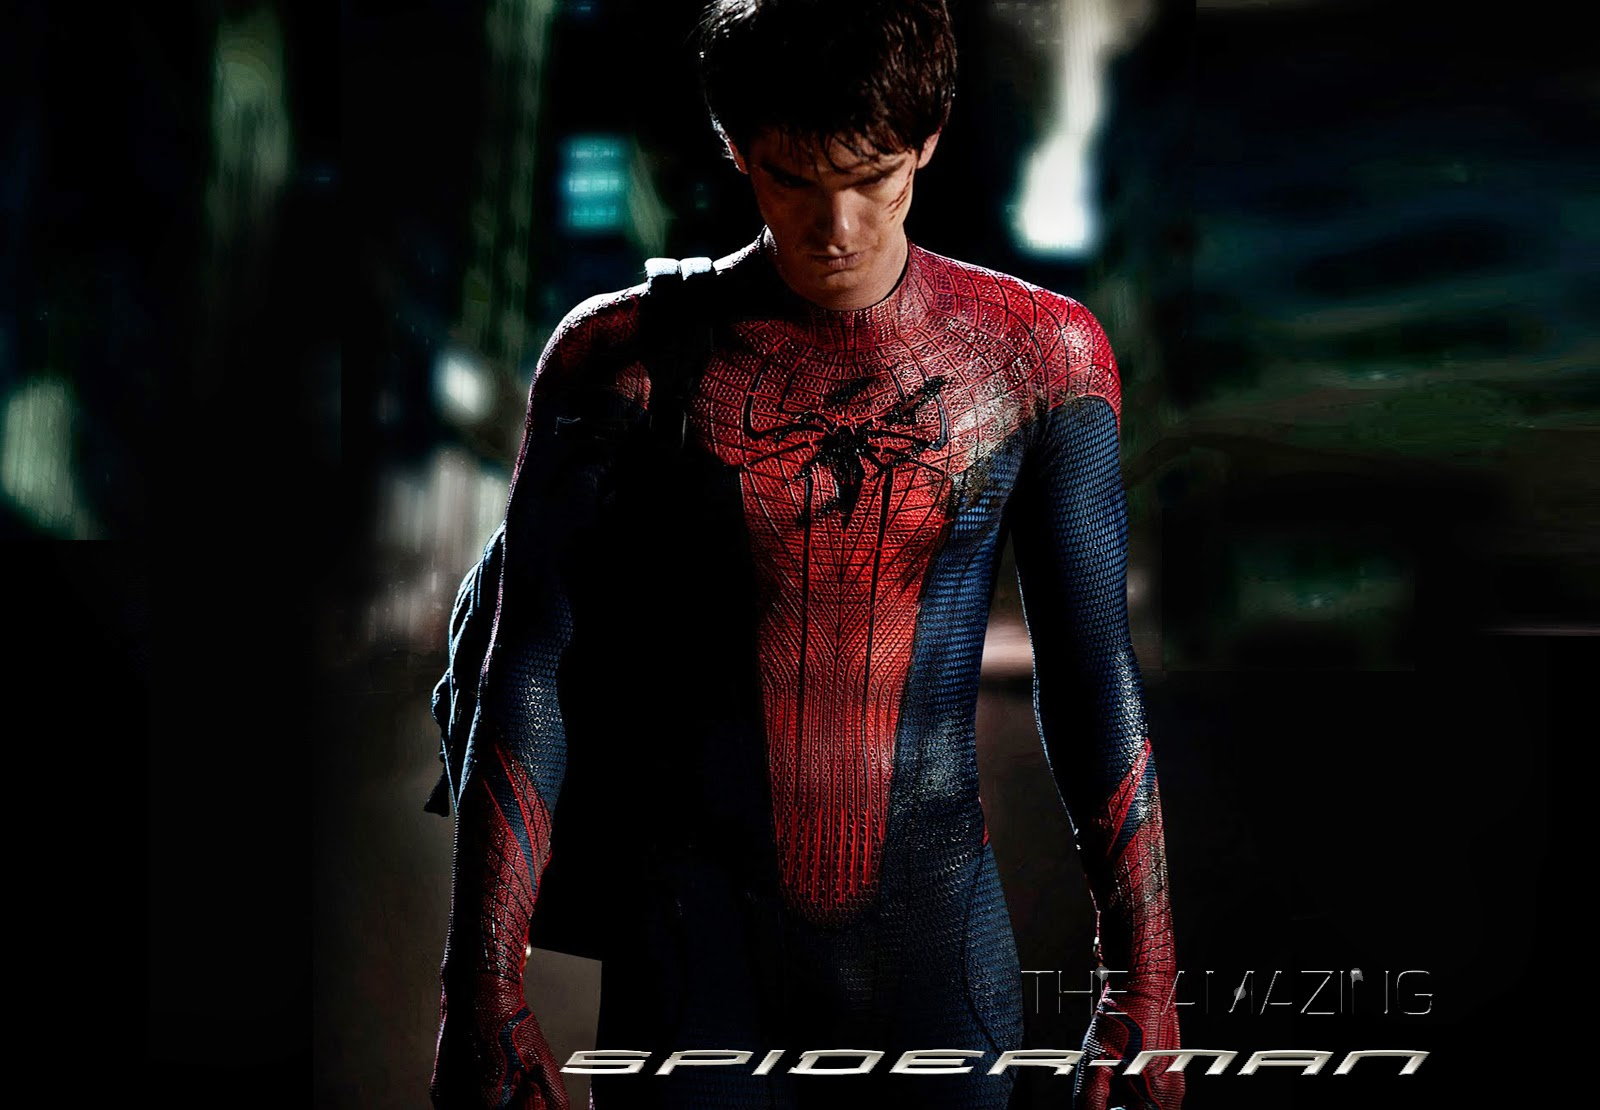 the amazing spiderman 2 wallpapers